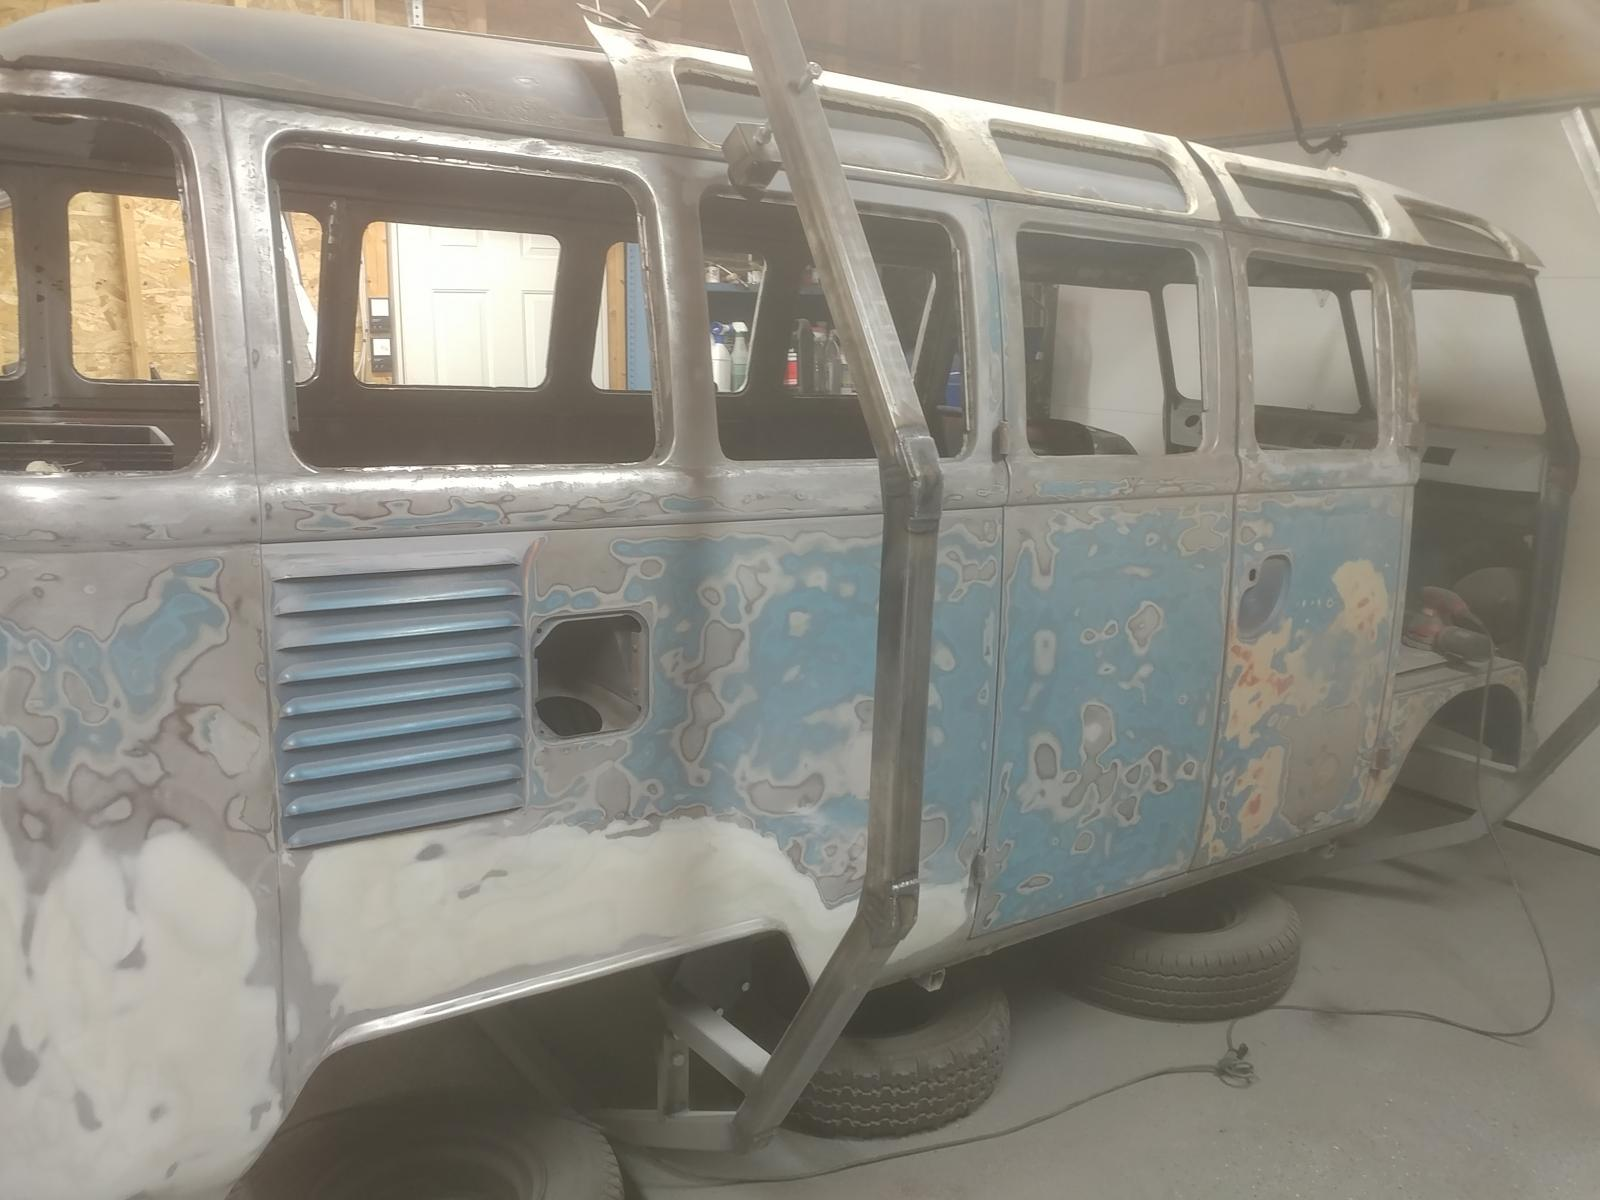 Sanding the bus body